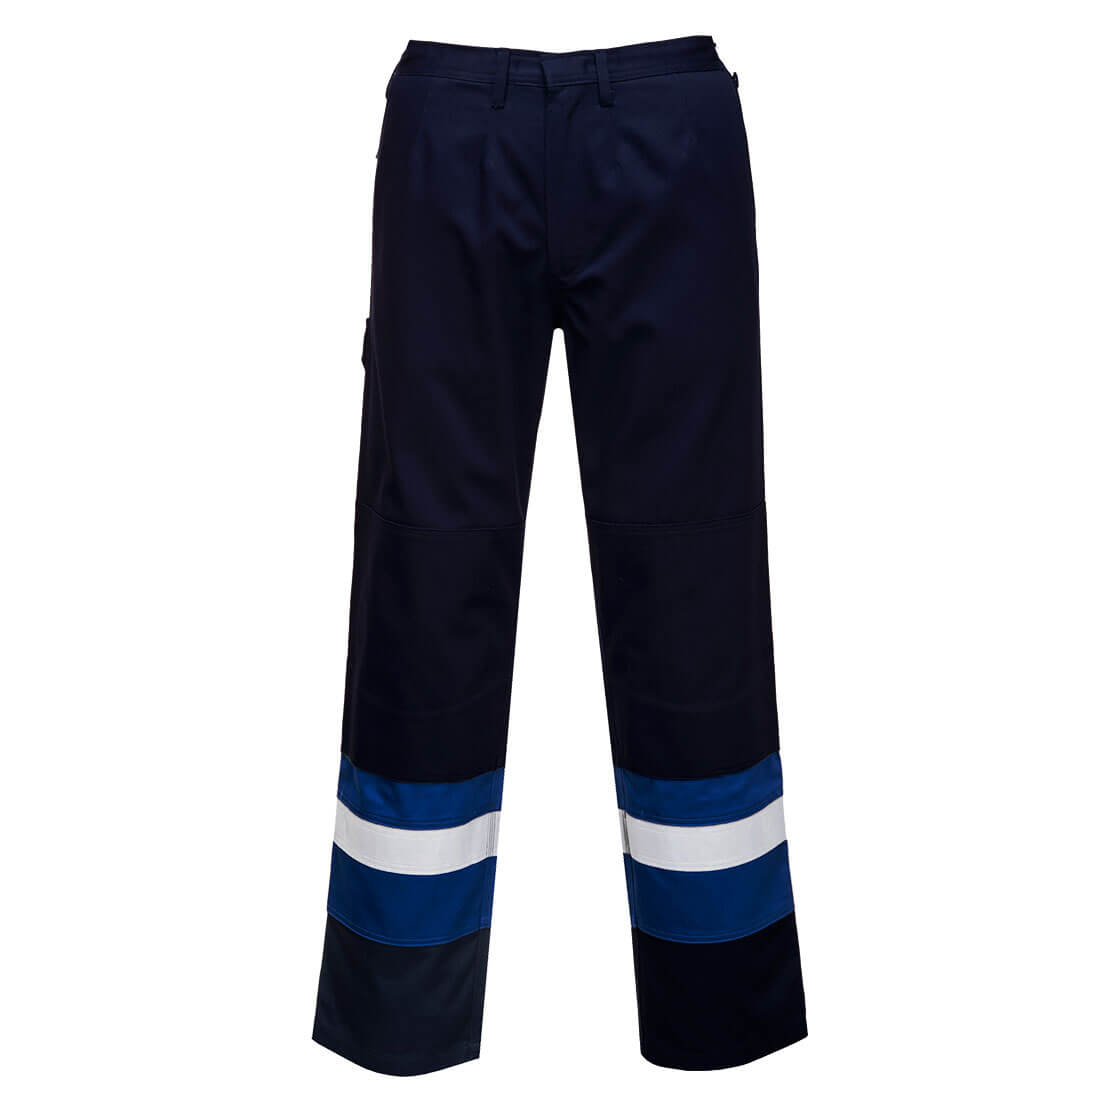 Image of Biz Flame Mens Flame Resistant Plus Trousers Navy / Royal 3XL 32""